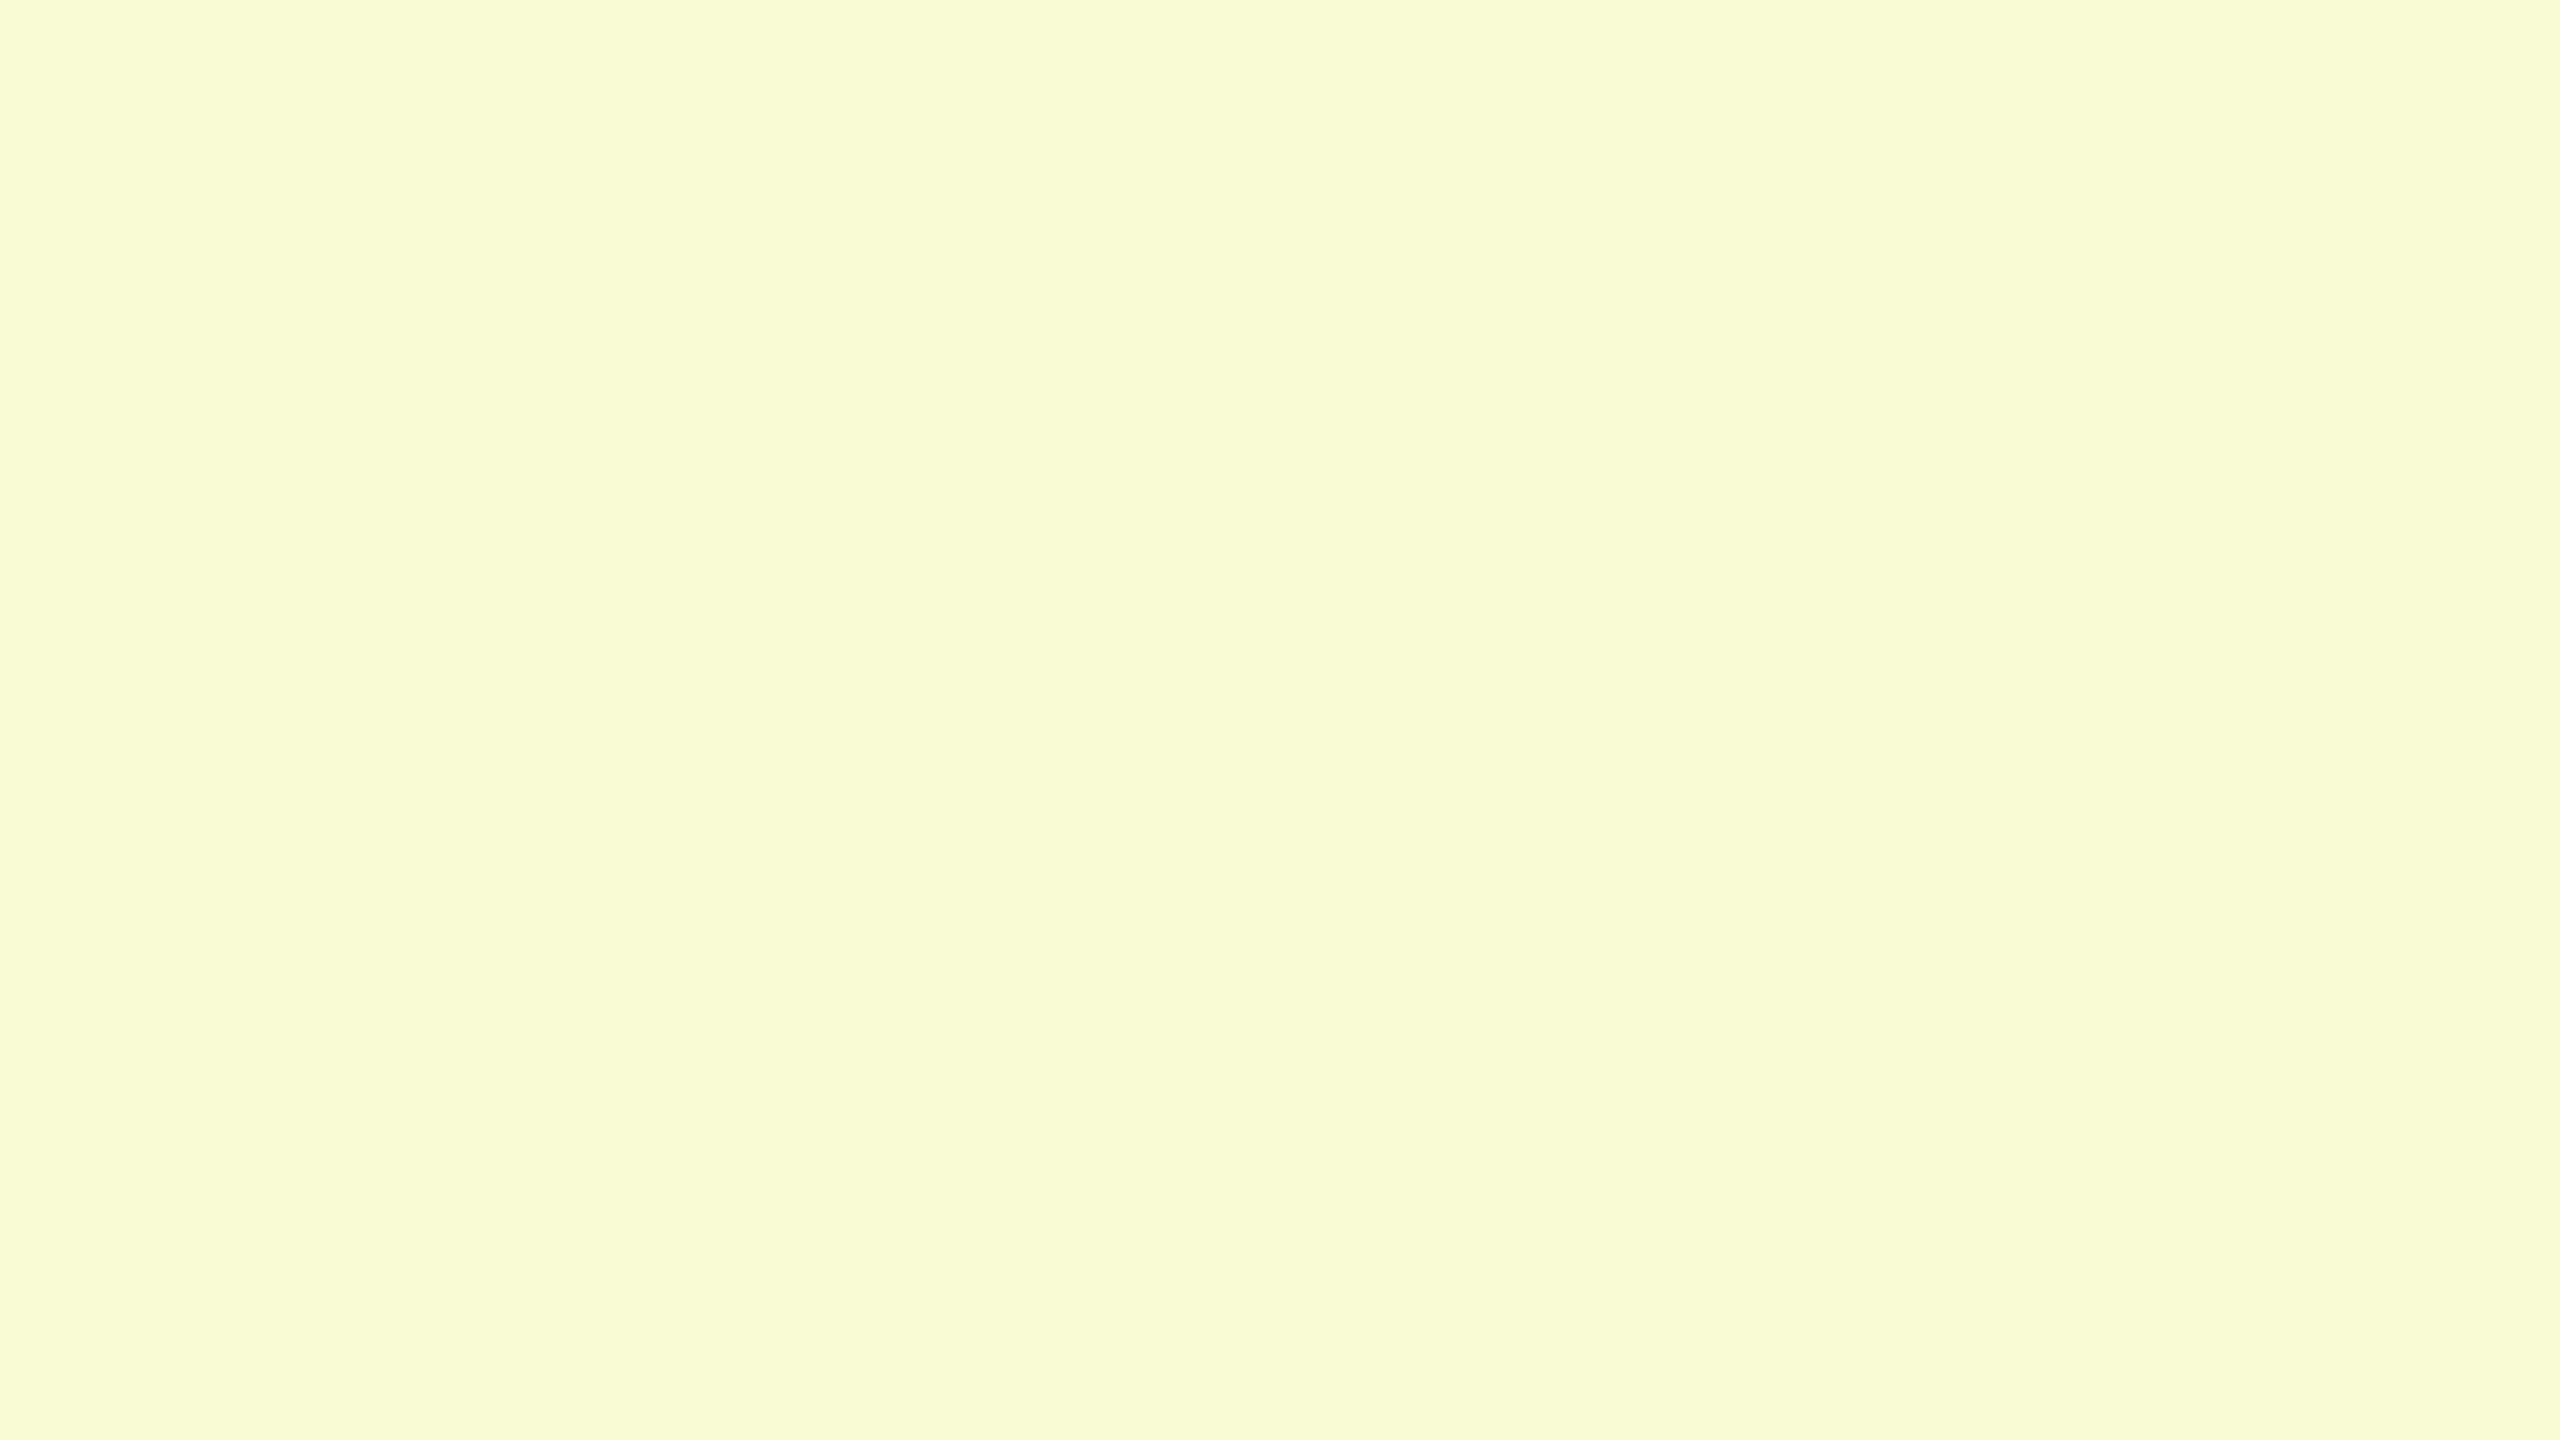 2560x1440 Light Goldenrod Yellow Solid Color Background